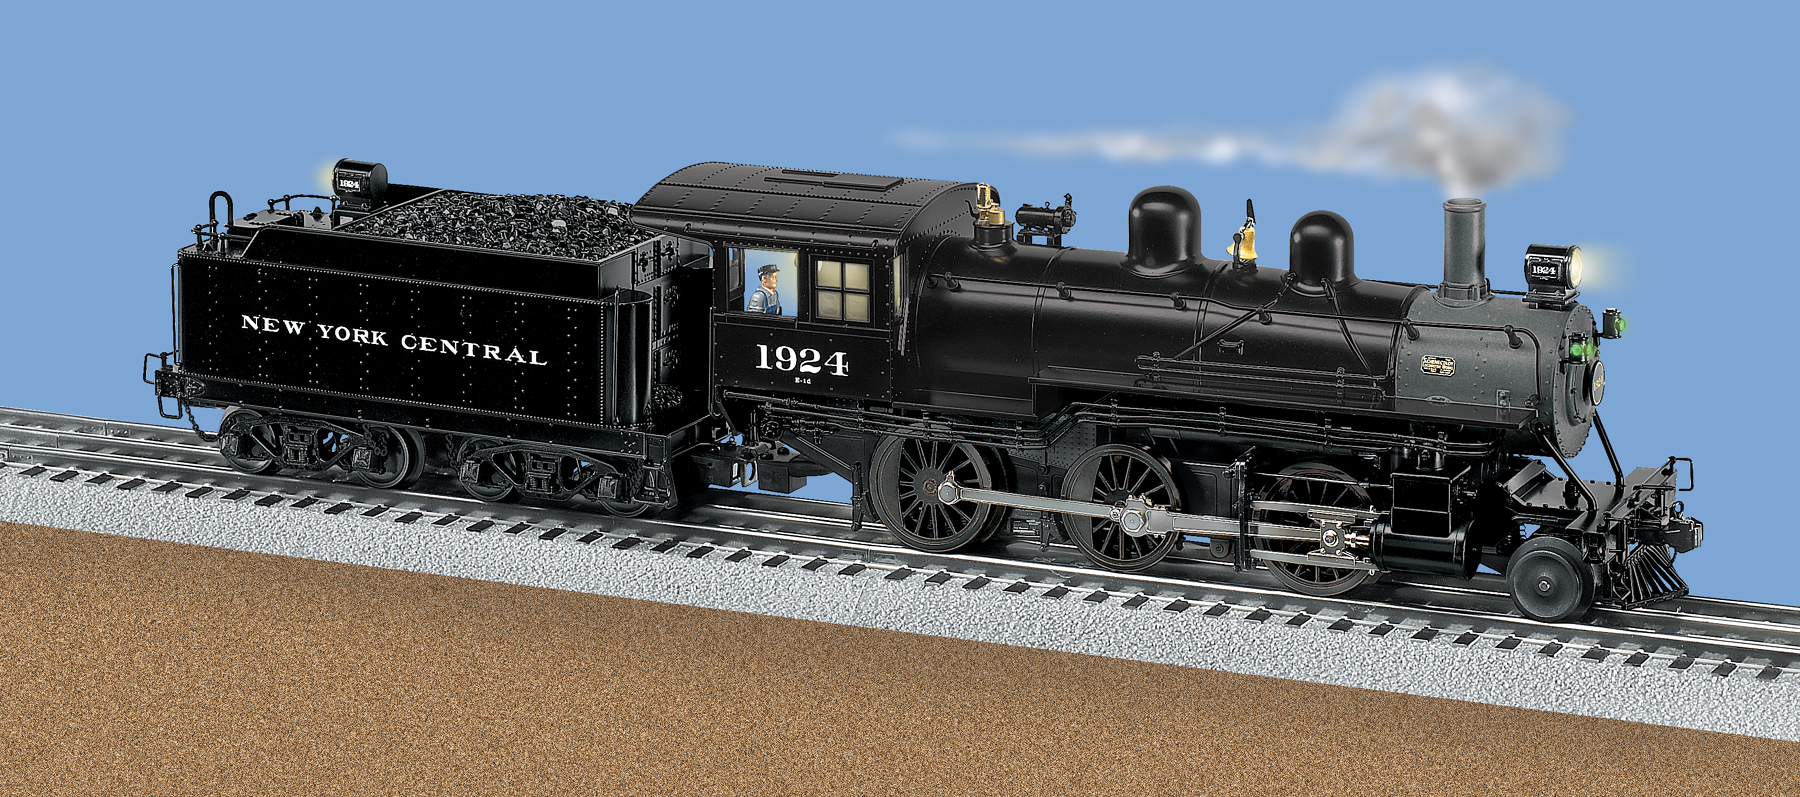 small resolution of s3 amazonaws com lionel initial assets products pr lionel fast track layout designs 1962 lionel train motor wiring diagram